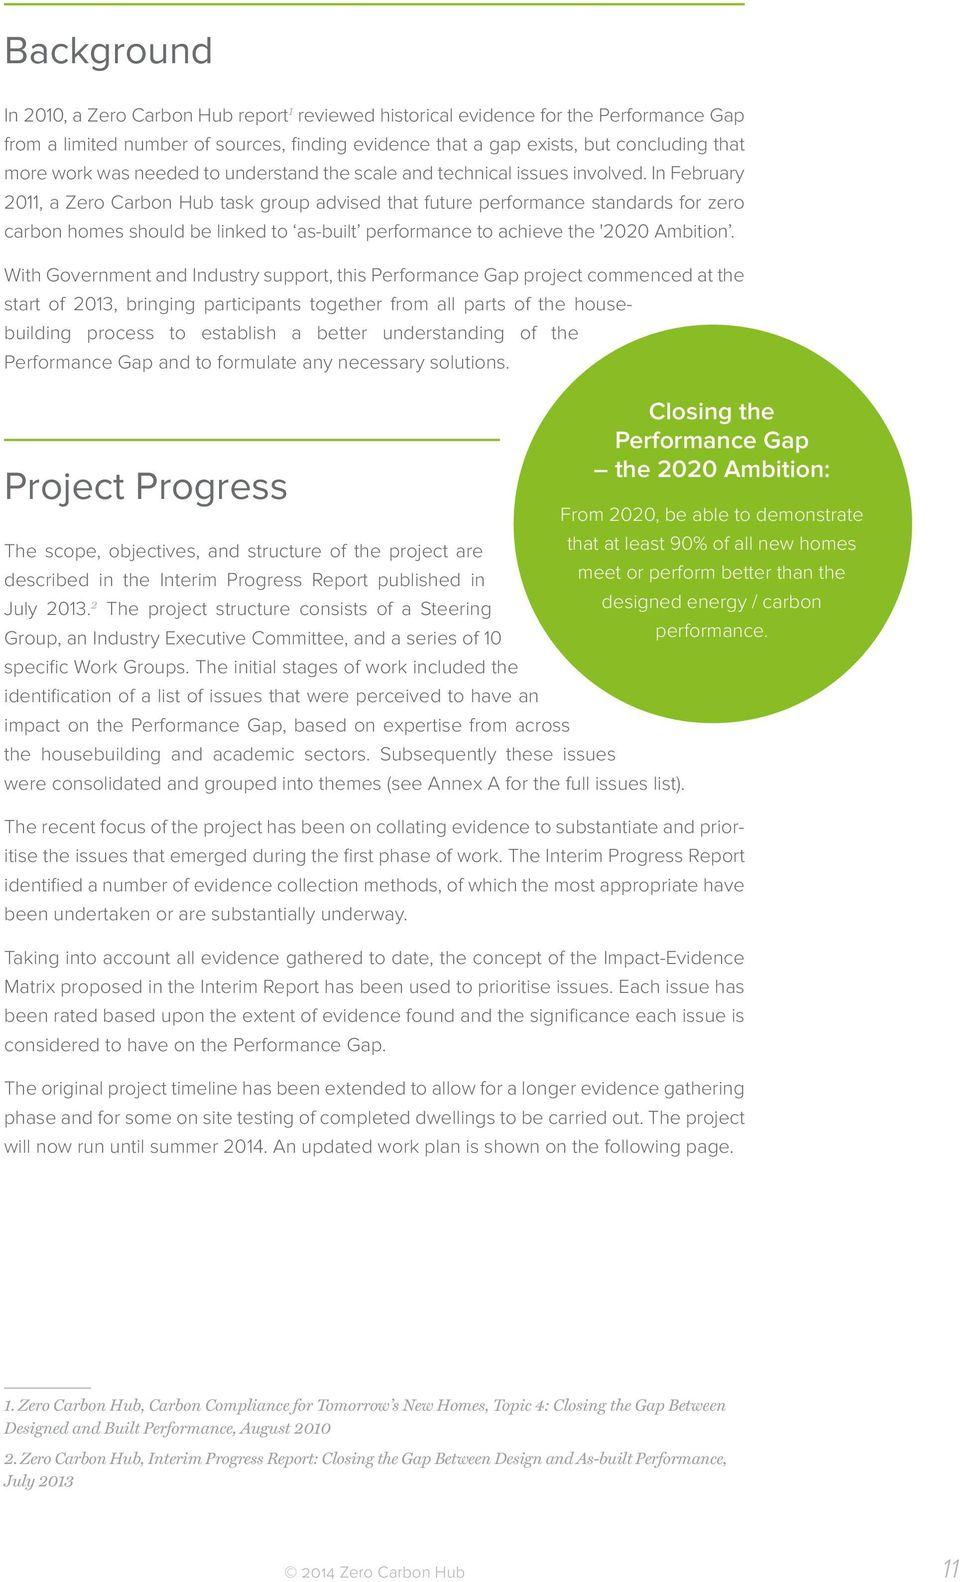 In February 2011, a Zero Carbon Hub task group advised that future performance standards for zero carbon homes should be linked to as-built performance to achieve the '2020 Ambition.